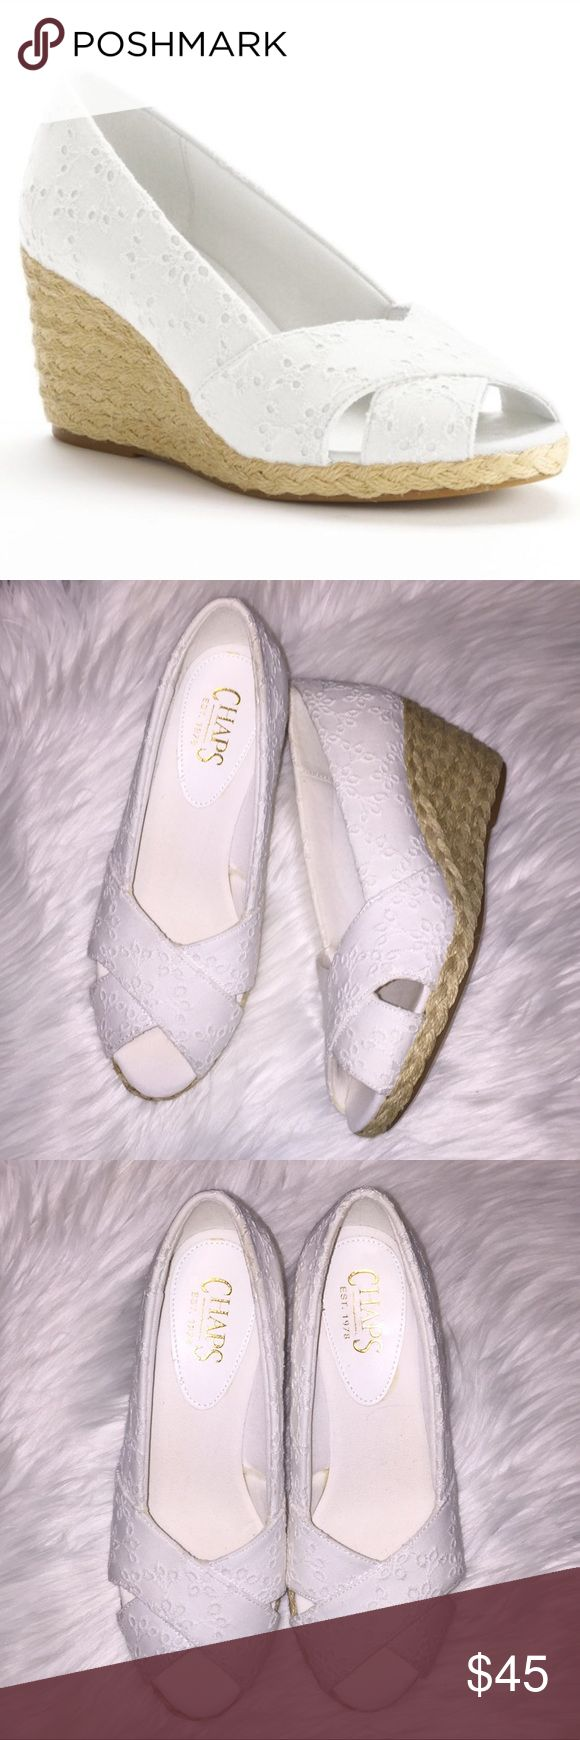 Chaps Dakota Espadrille white lace wedges Like new no imperfections. Size 6. My feet are too wide for these. So cute and hate they don't fit. Perfect for this season!!!!! My loss your gain offers and trades welcome. 💋💋💋💋I do flash sales on all my items a lot but I bring price back up. For example if one day sale next day it will go back to original price or wknd sale on Monday it will go back up ect. When I say I drop them I mean I DROP THE PRICE ❤️❤️❤️❤️ Chaps Shoes Wedges